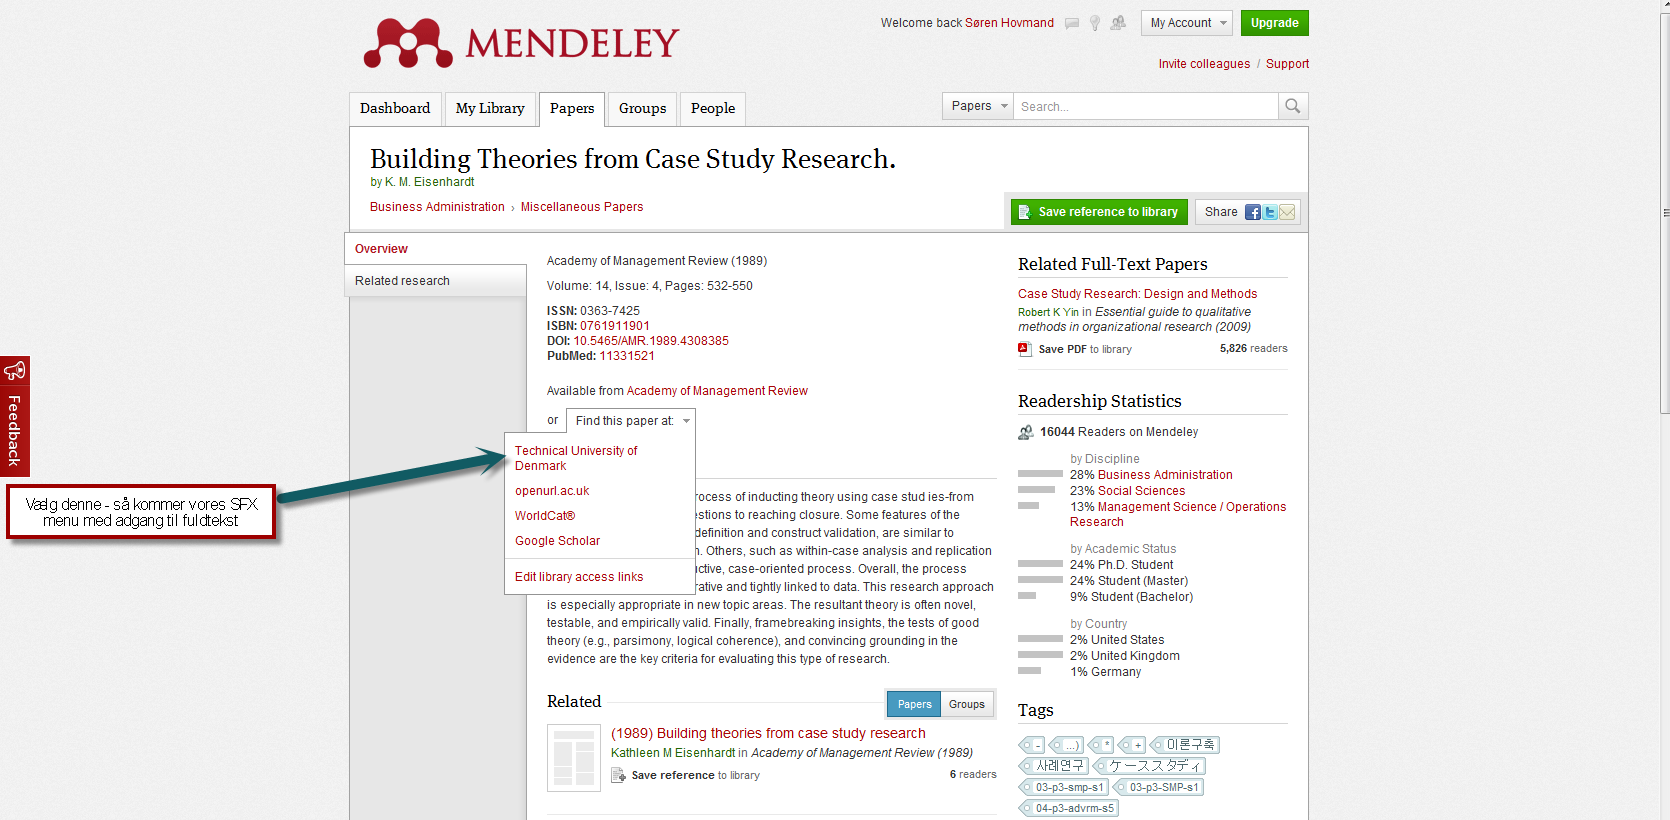 Open url in Mendeley web